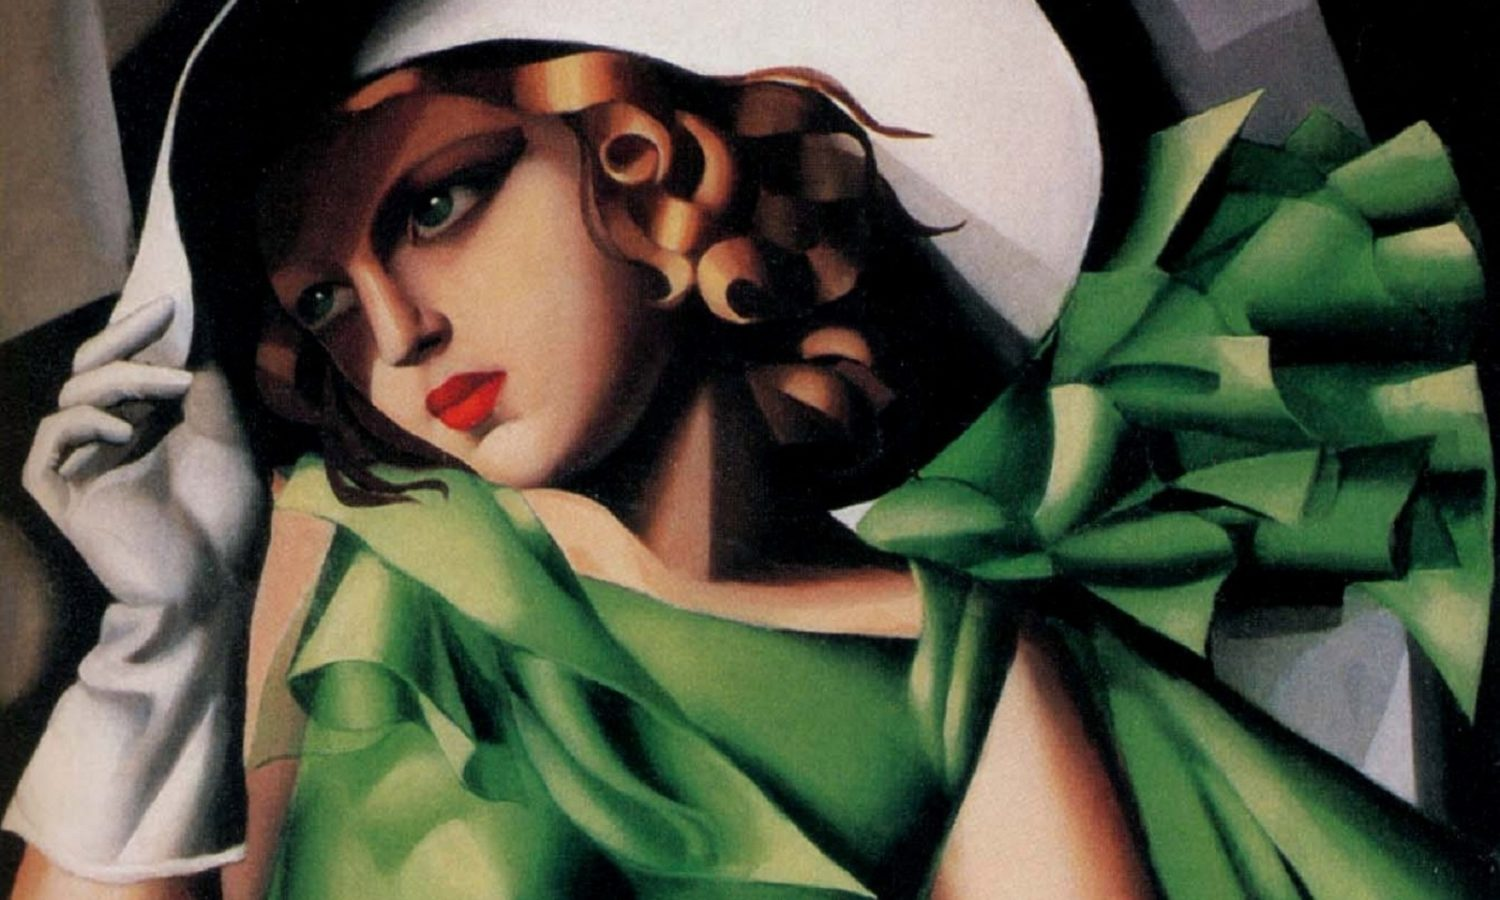 tamara de lempicka, the first woman artist to be a glamour star